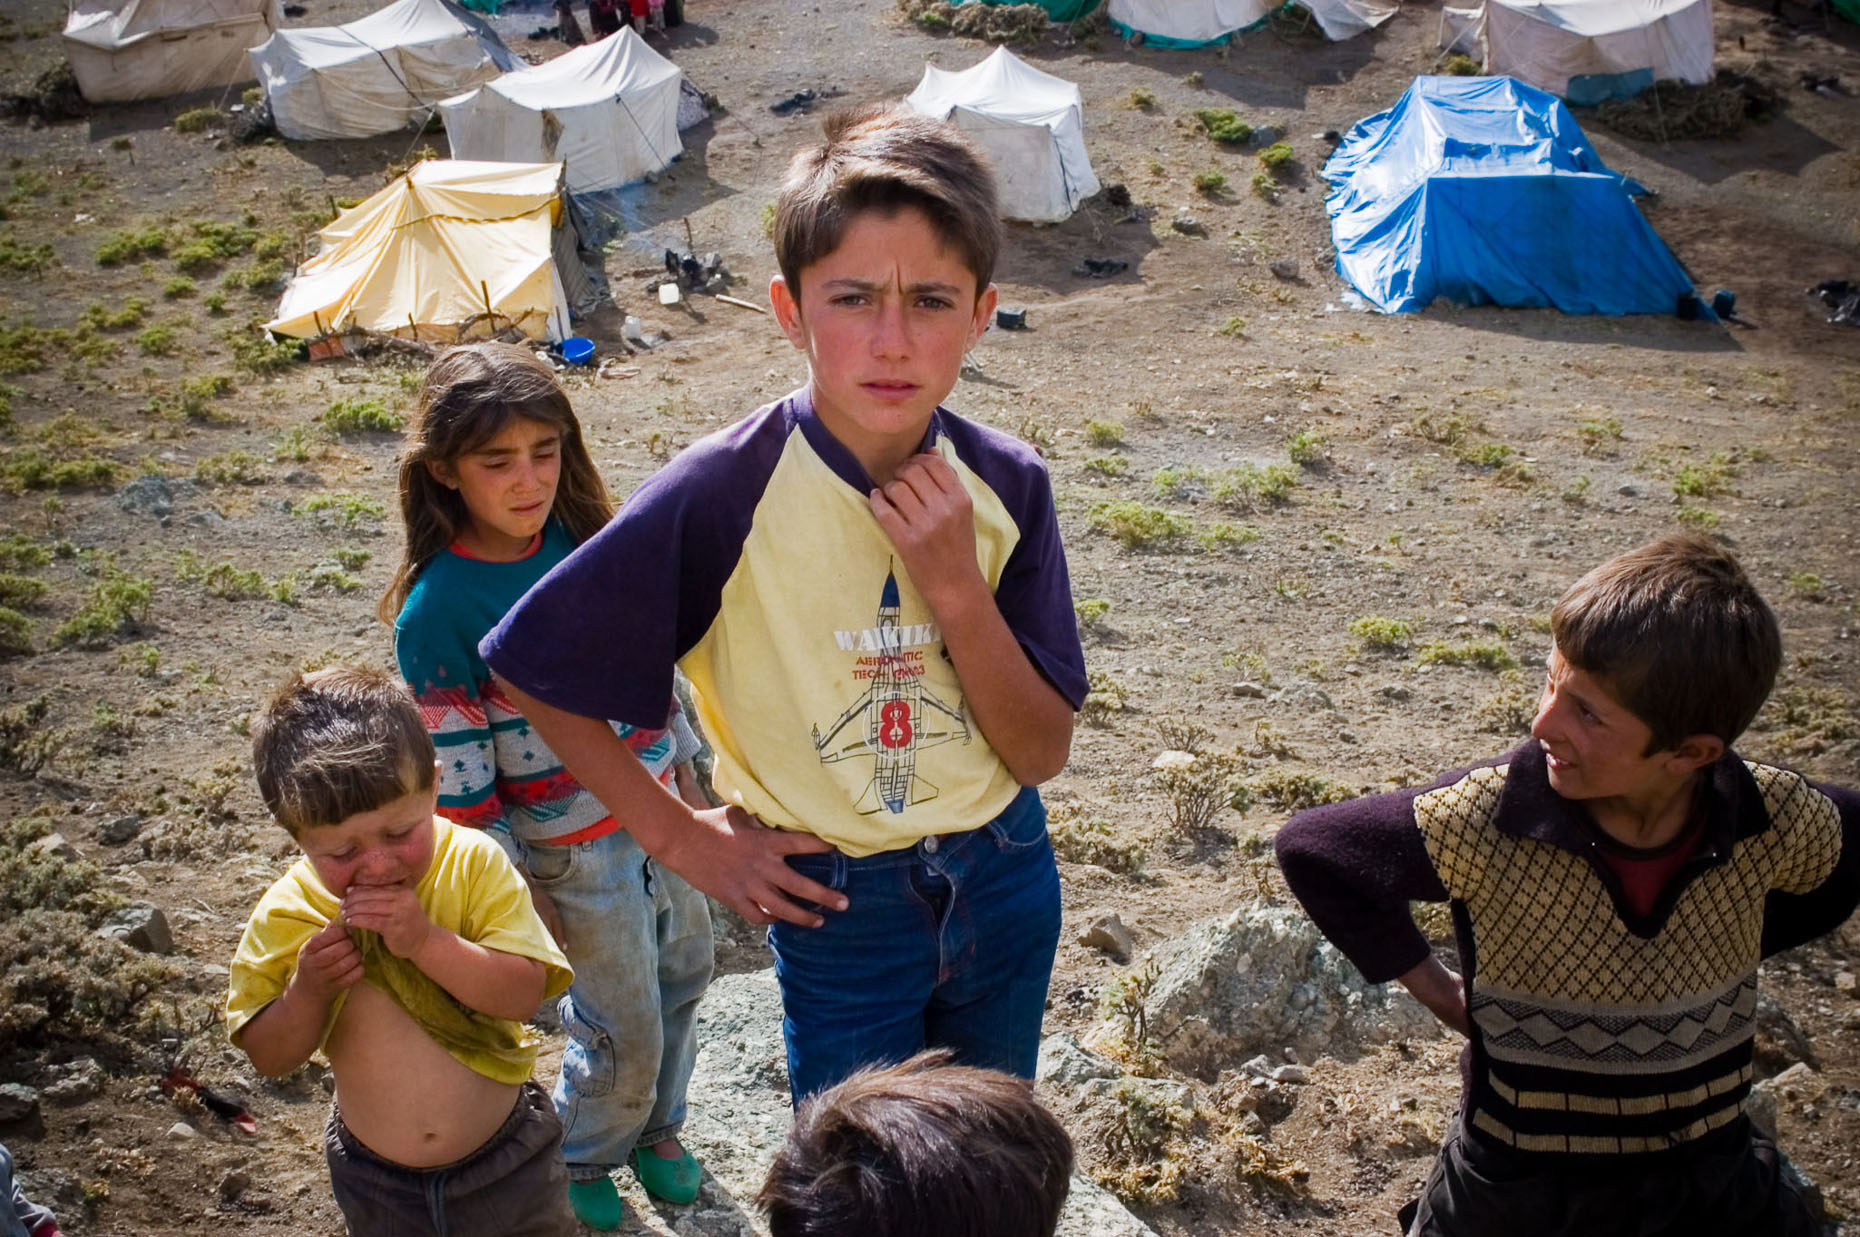 Environmental portrait of nomadic Kurdish village kids and tents near Syrian border, Turkey.